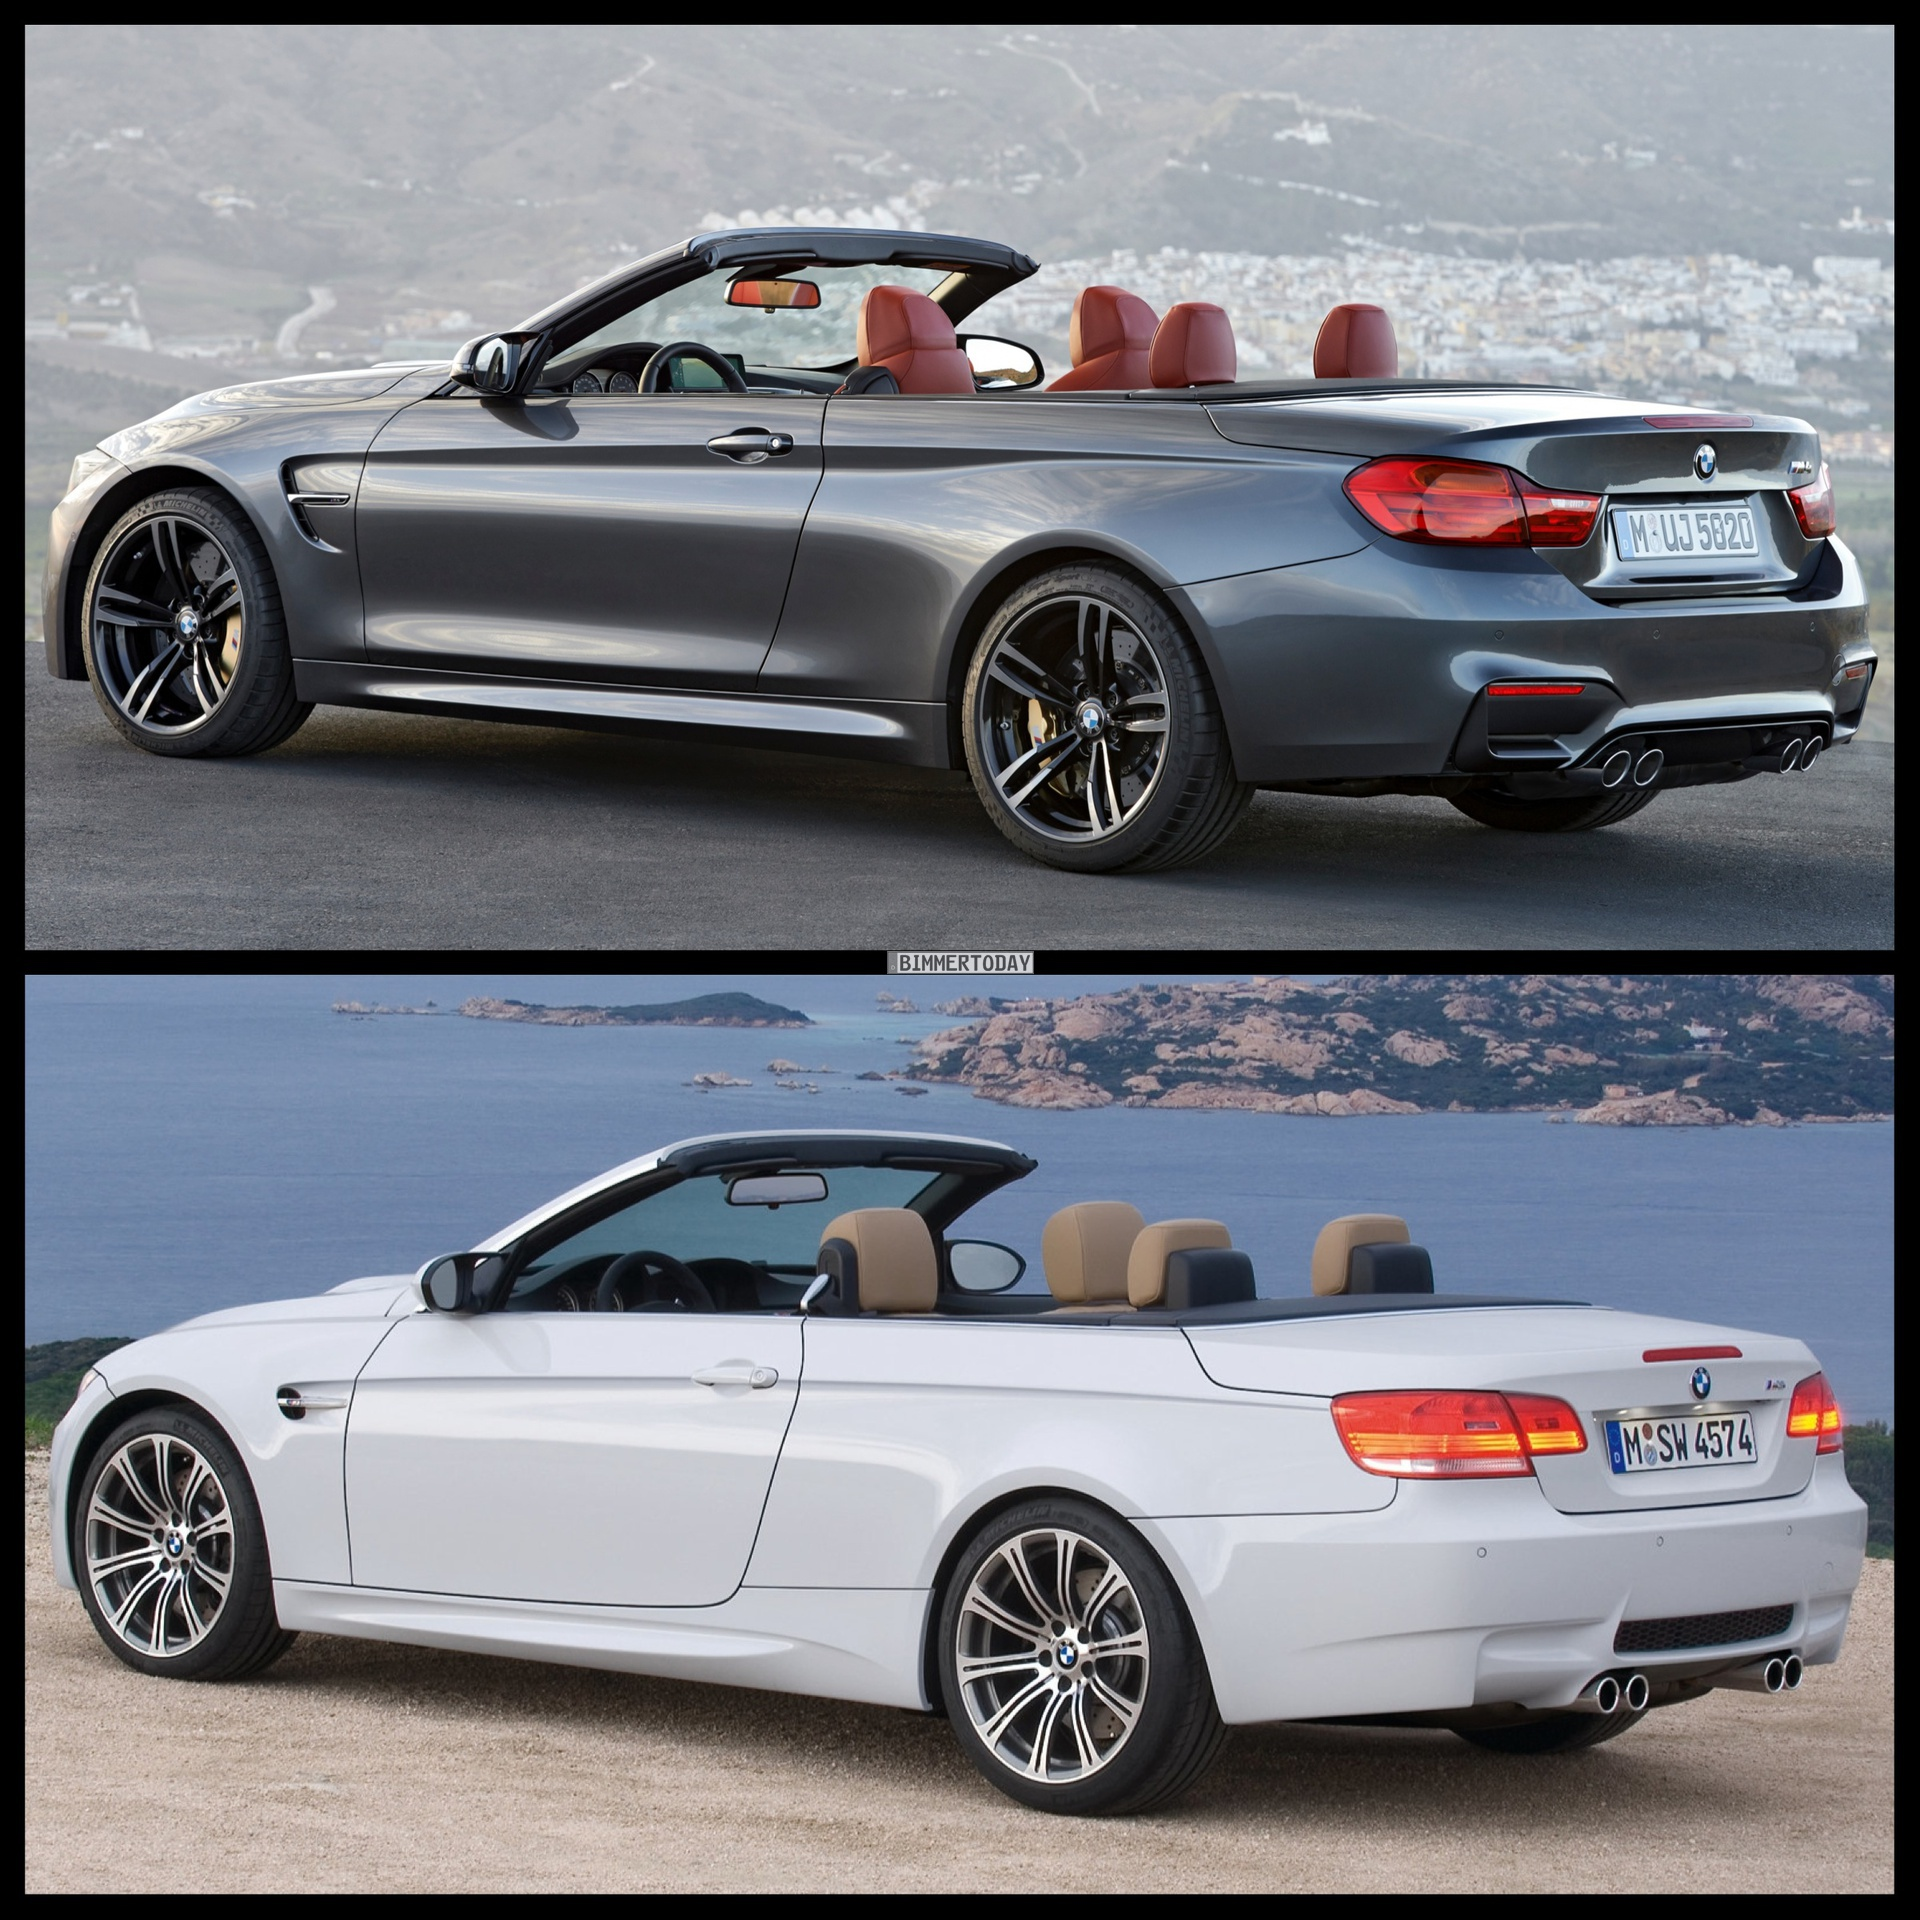 E93 BMW M3 Convertible Vs. 2015 BMW M4 Convertible